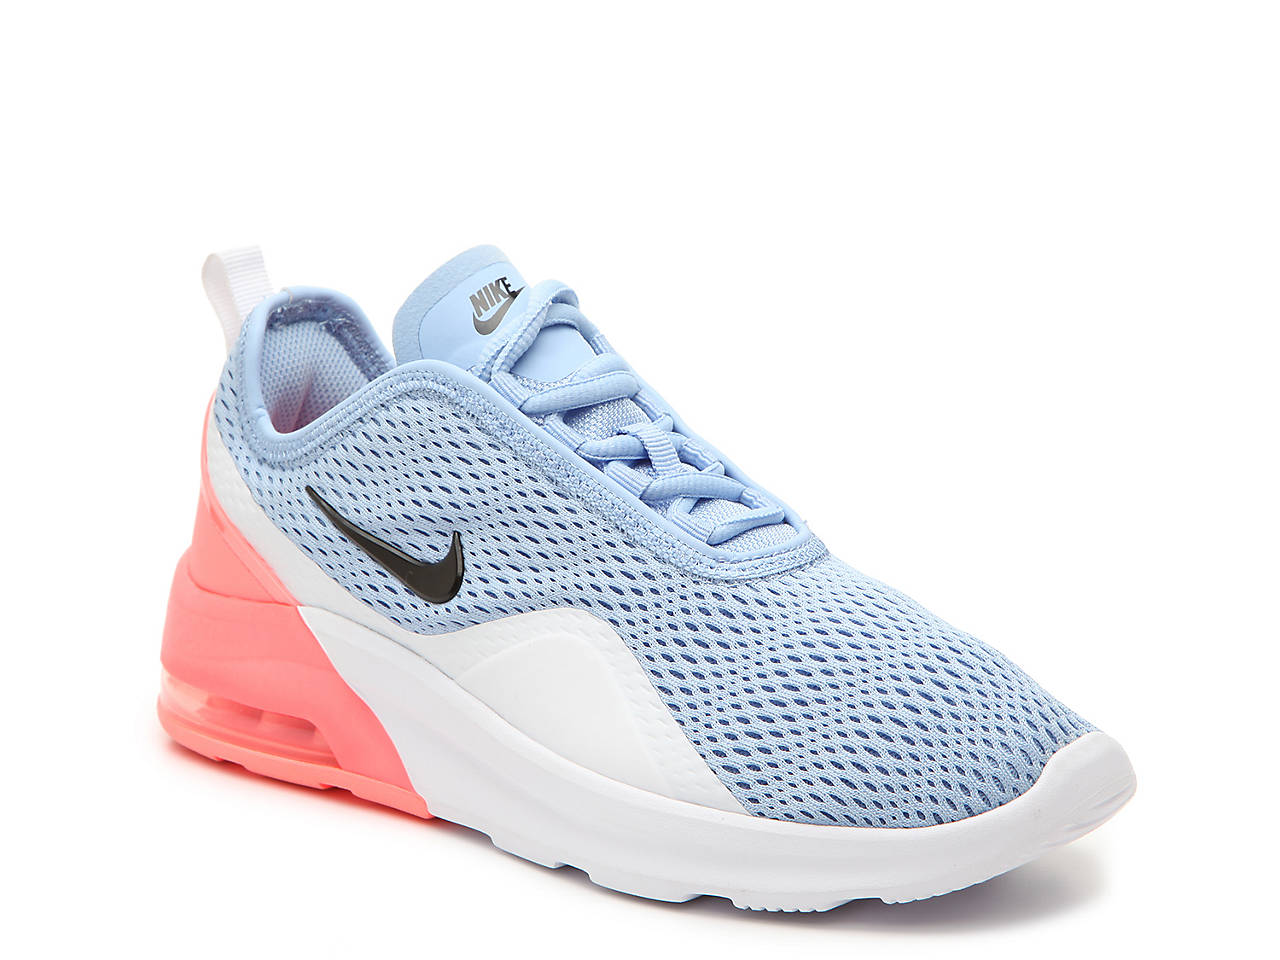 6b92bbd25fe7c Nike Air Max Motion 2 Sneaker - Women's Women's Shoes | DSW